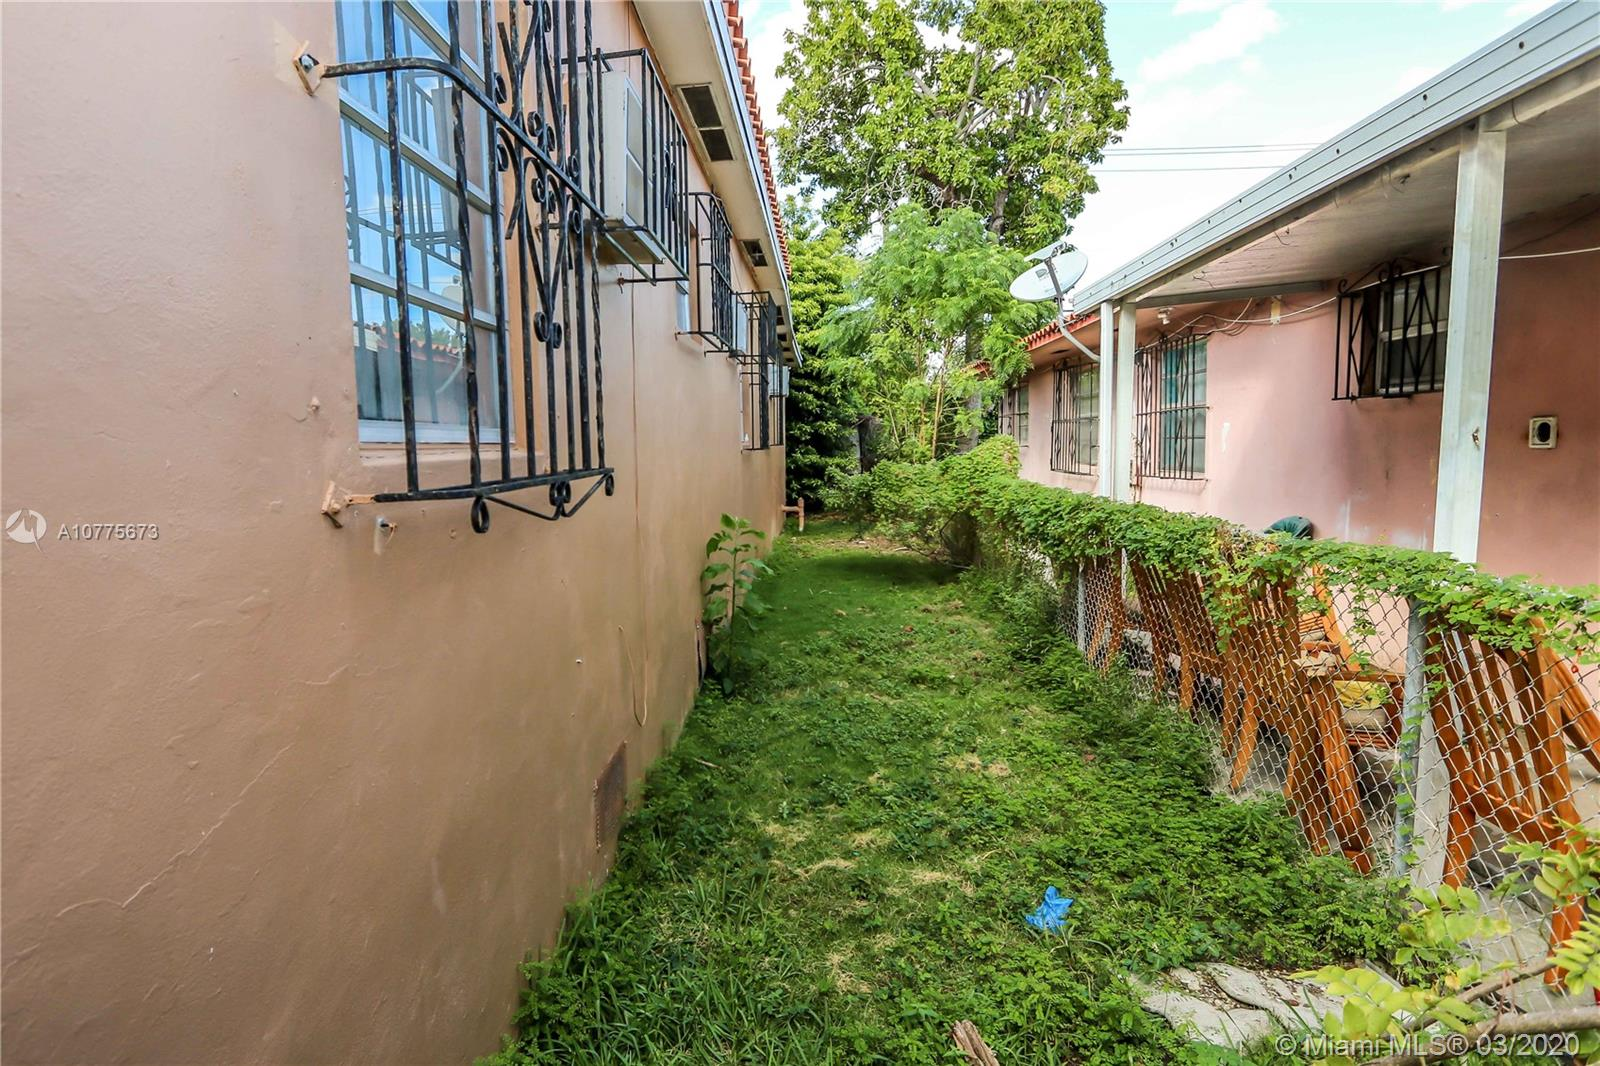 1851 NW 17th St  For Sale A10775673, FL